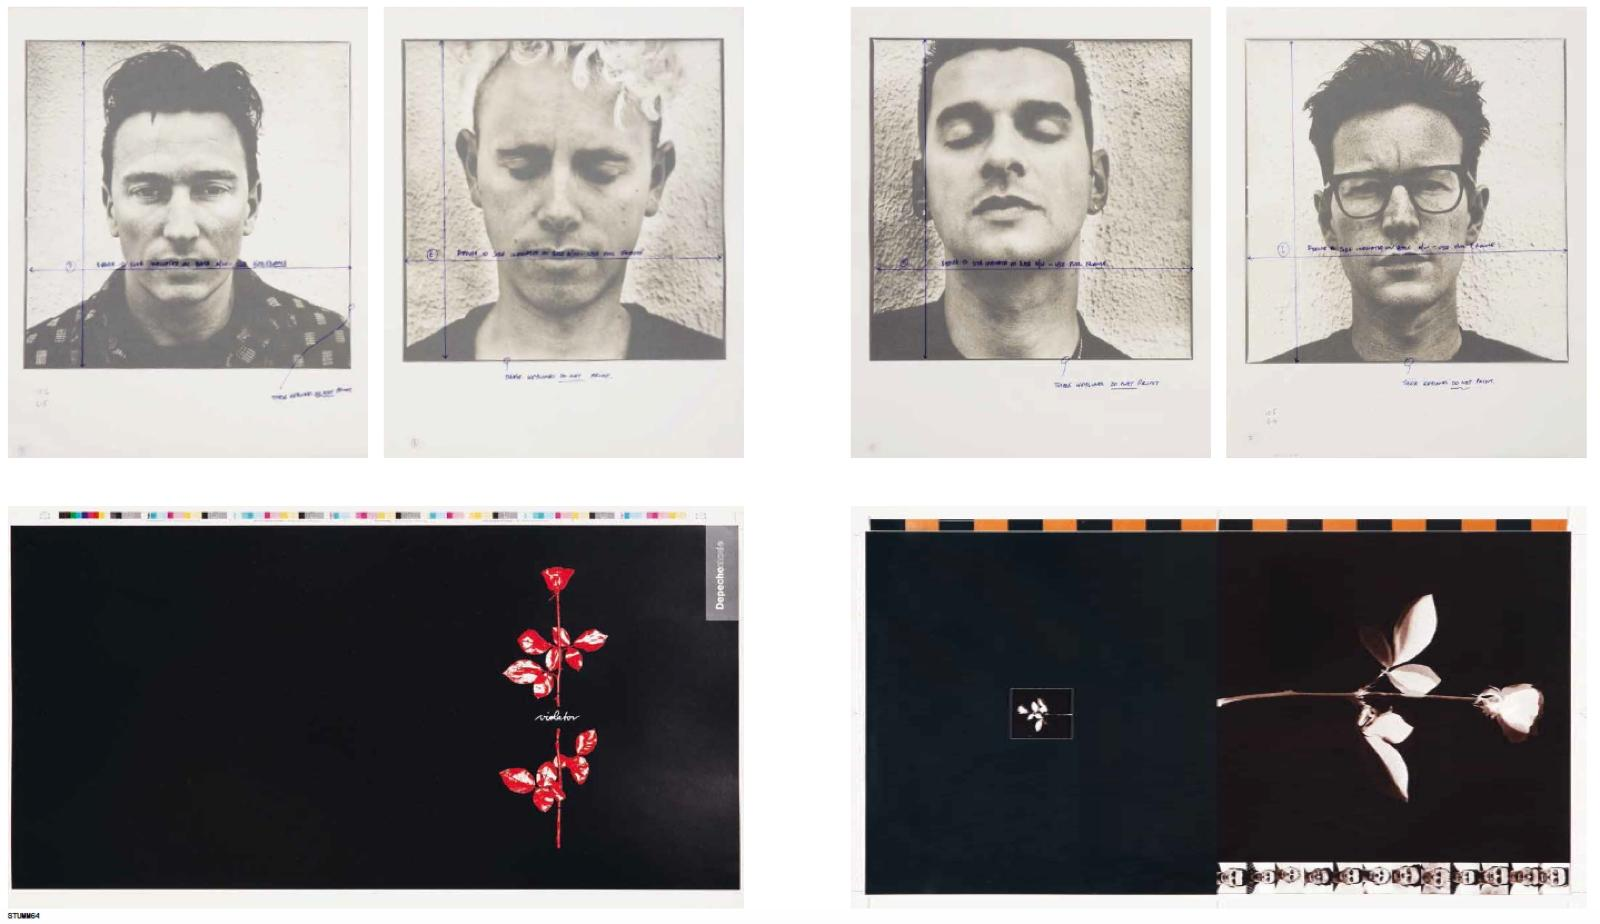 Mute Buch Depeche Mode Violator Proofs